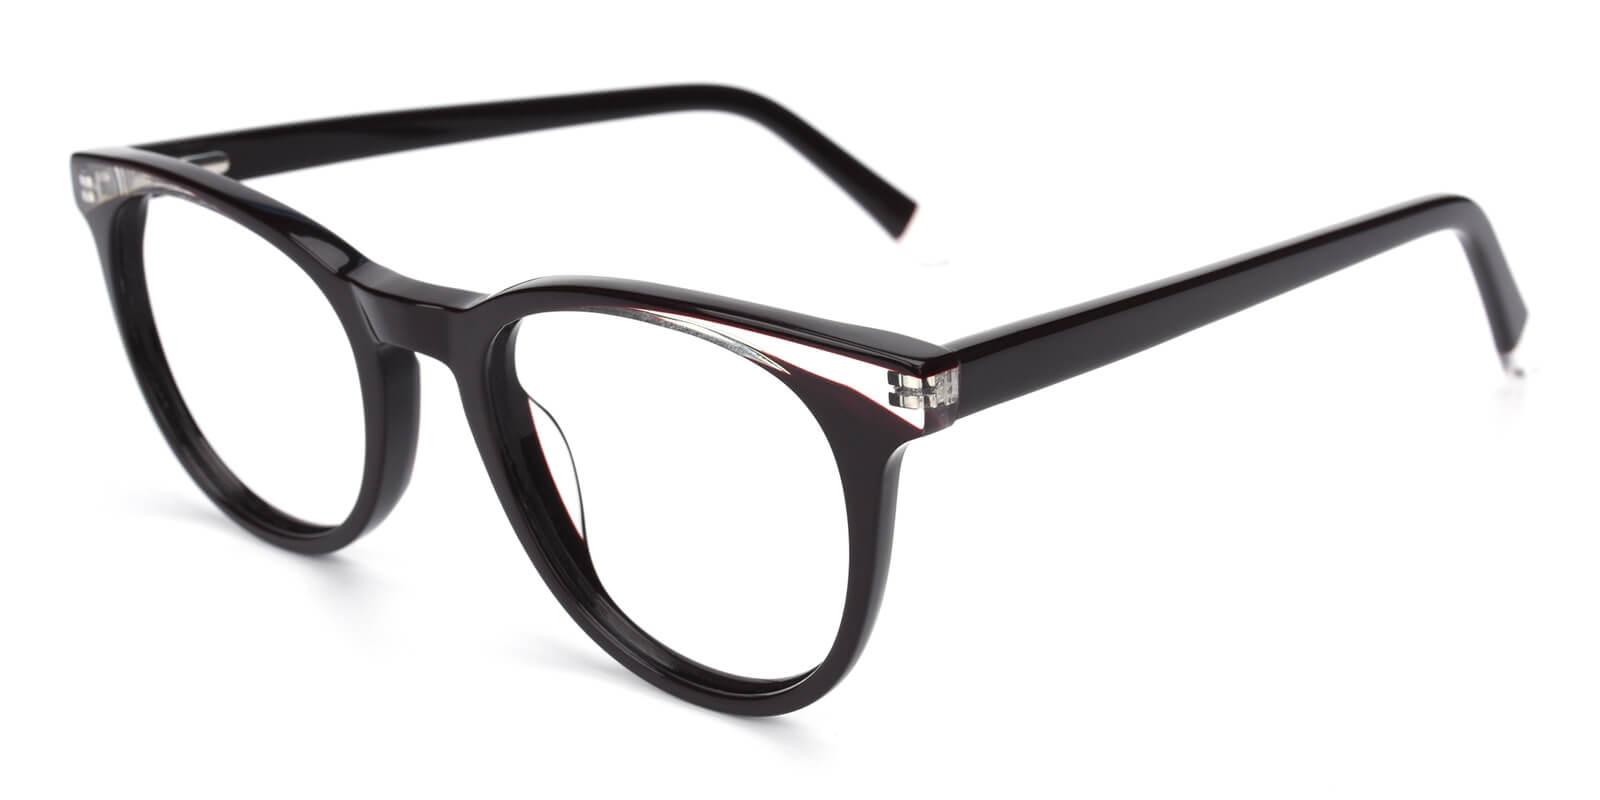 Clementine-Black-Oval / Cat-Acetate-Eyeglasses-additional1